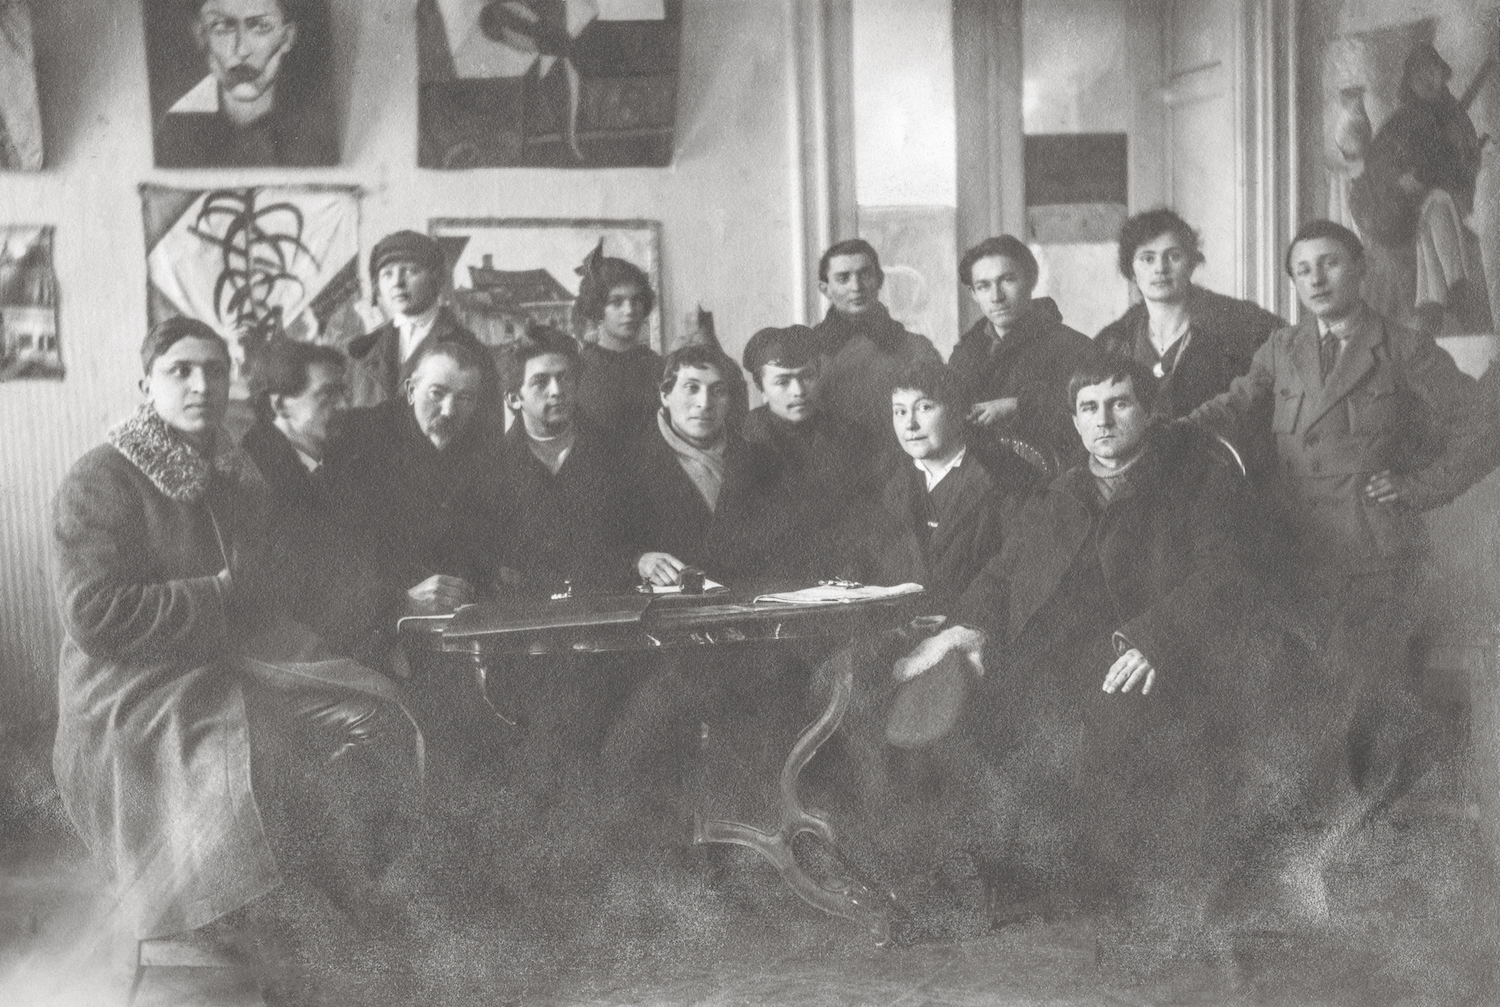 Members of the Creative Committee of the People's Art School, Vitebsk, winter 1919.  Seated: Yuri (Yehuda) Pen (third from left), Marc Chagall (center), Vera Ermolaeva (second from right), Kazimir Malevich (right).  Gelatin silver print. Archives Marc et Ida Chagall, Paris.